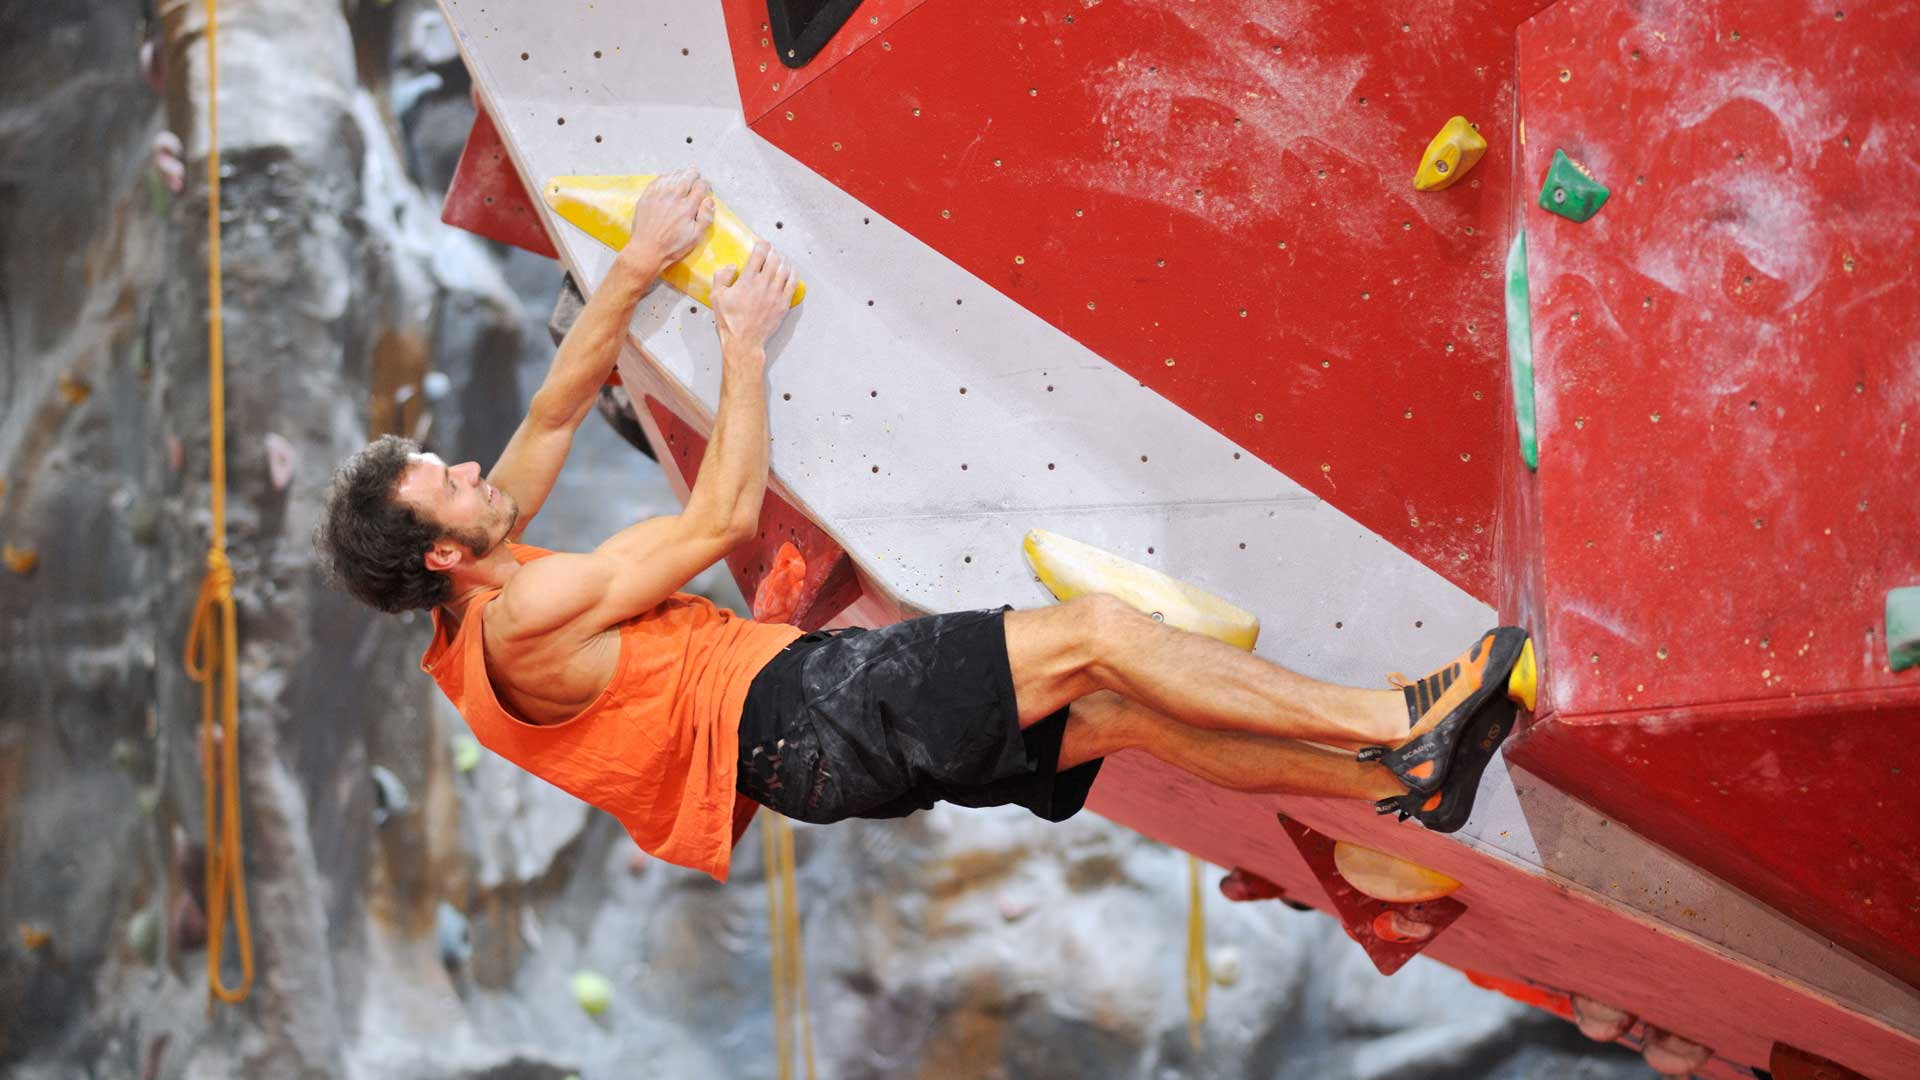 indy climbing wall bouldering